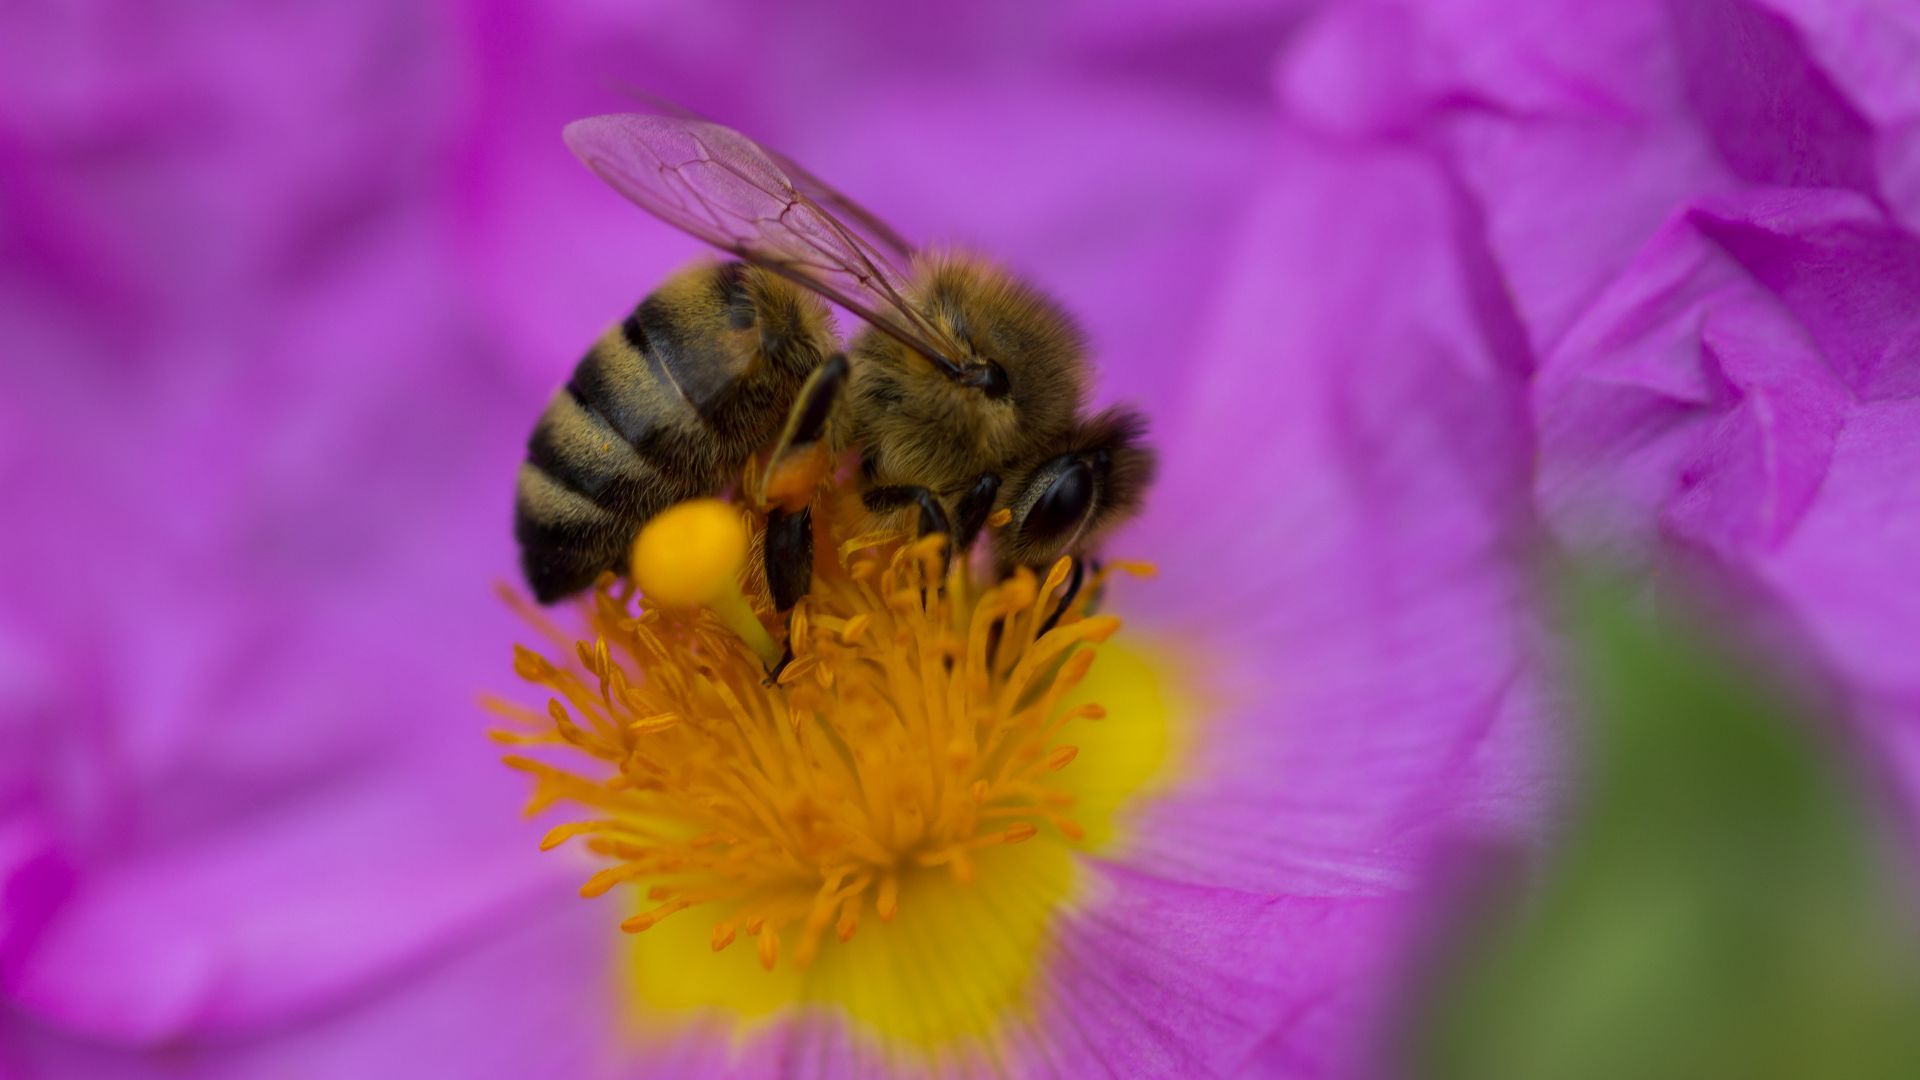 Wallpaper Bee Purple Flower Yellow Insects Animals 10352